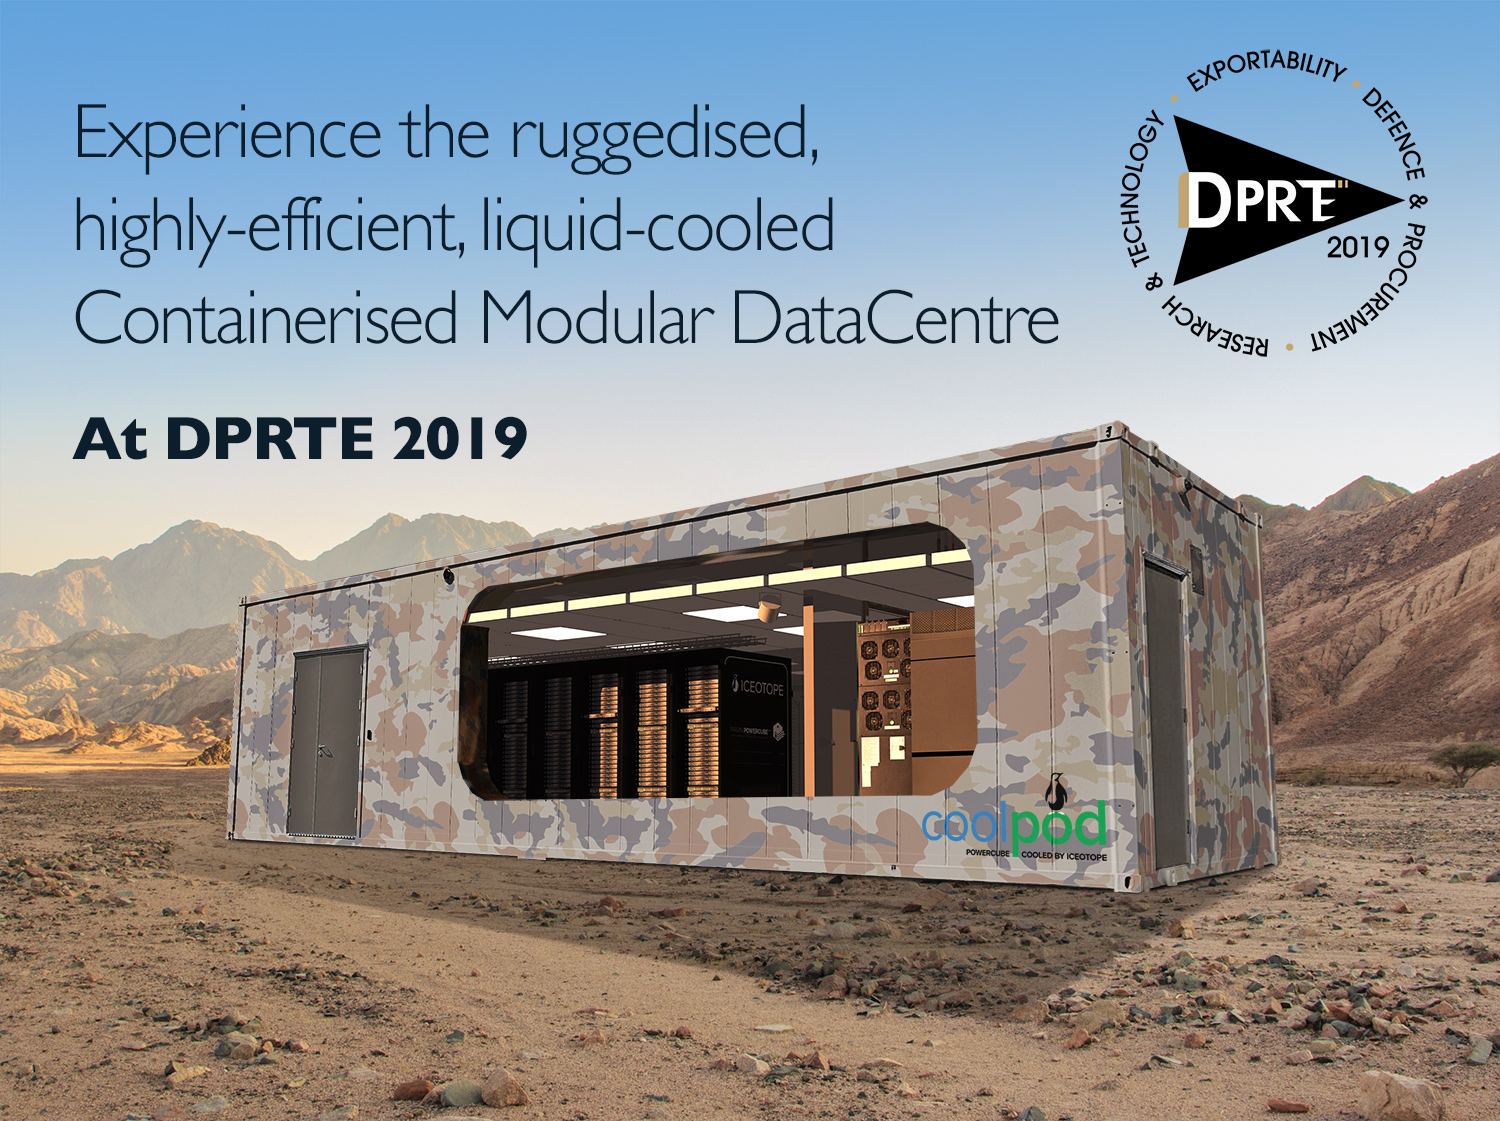 CoolPod: Experience the ruggedised, highly-efficient, liquid-cooled Containerised Modular DataCentre